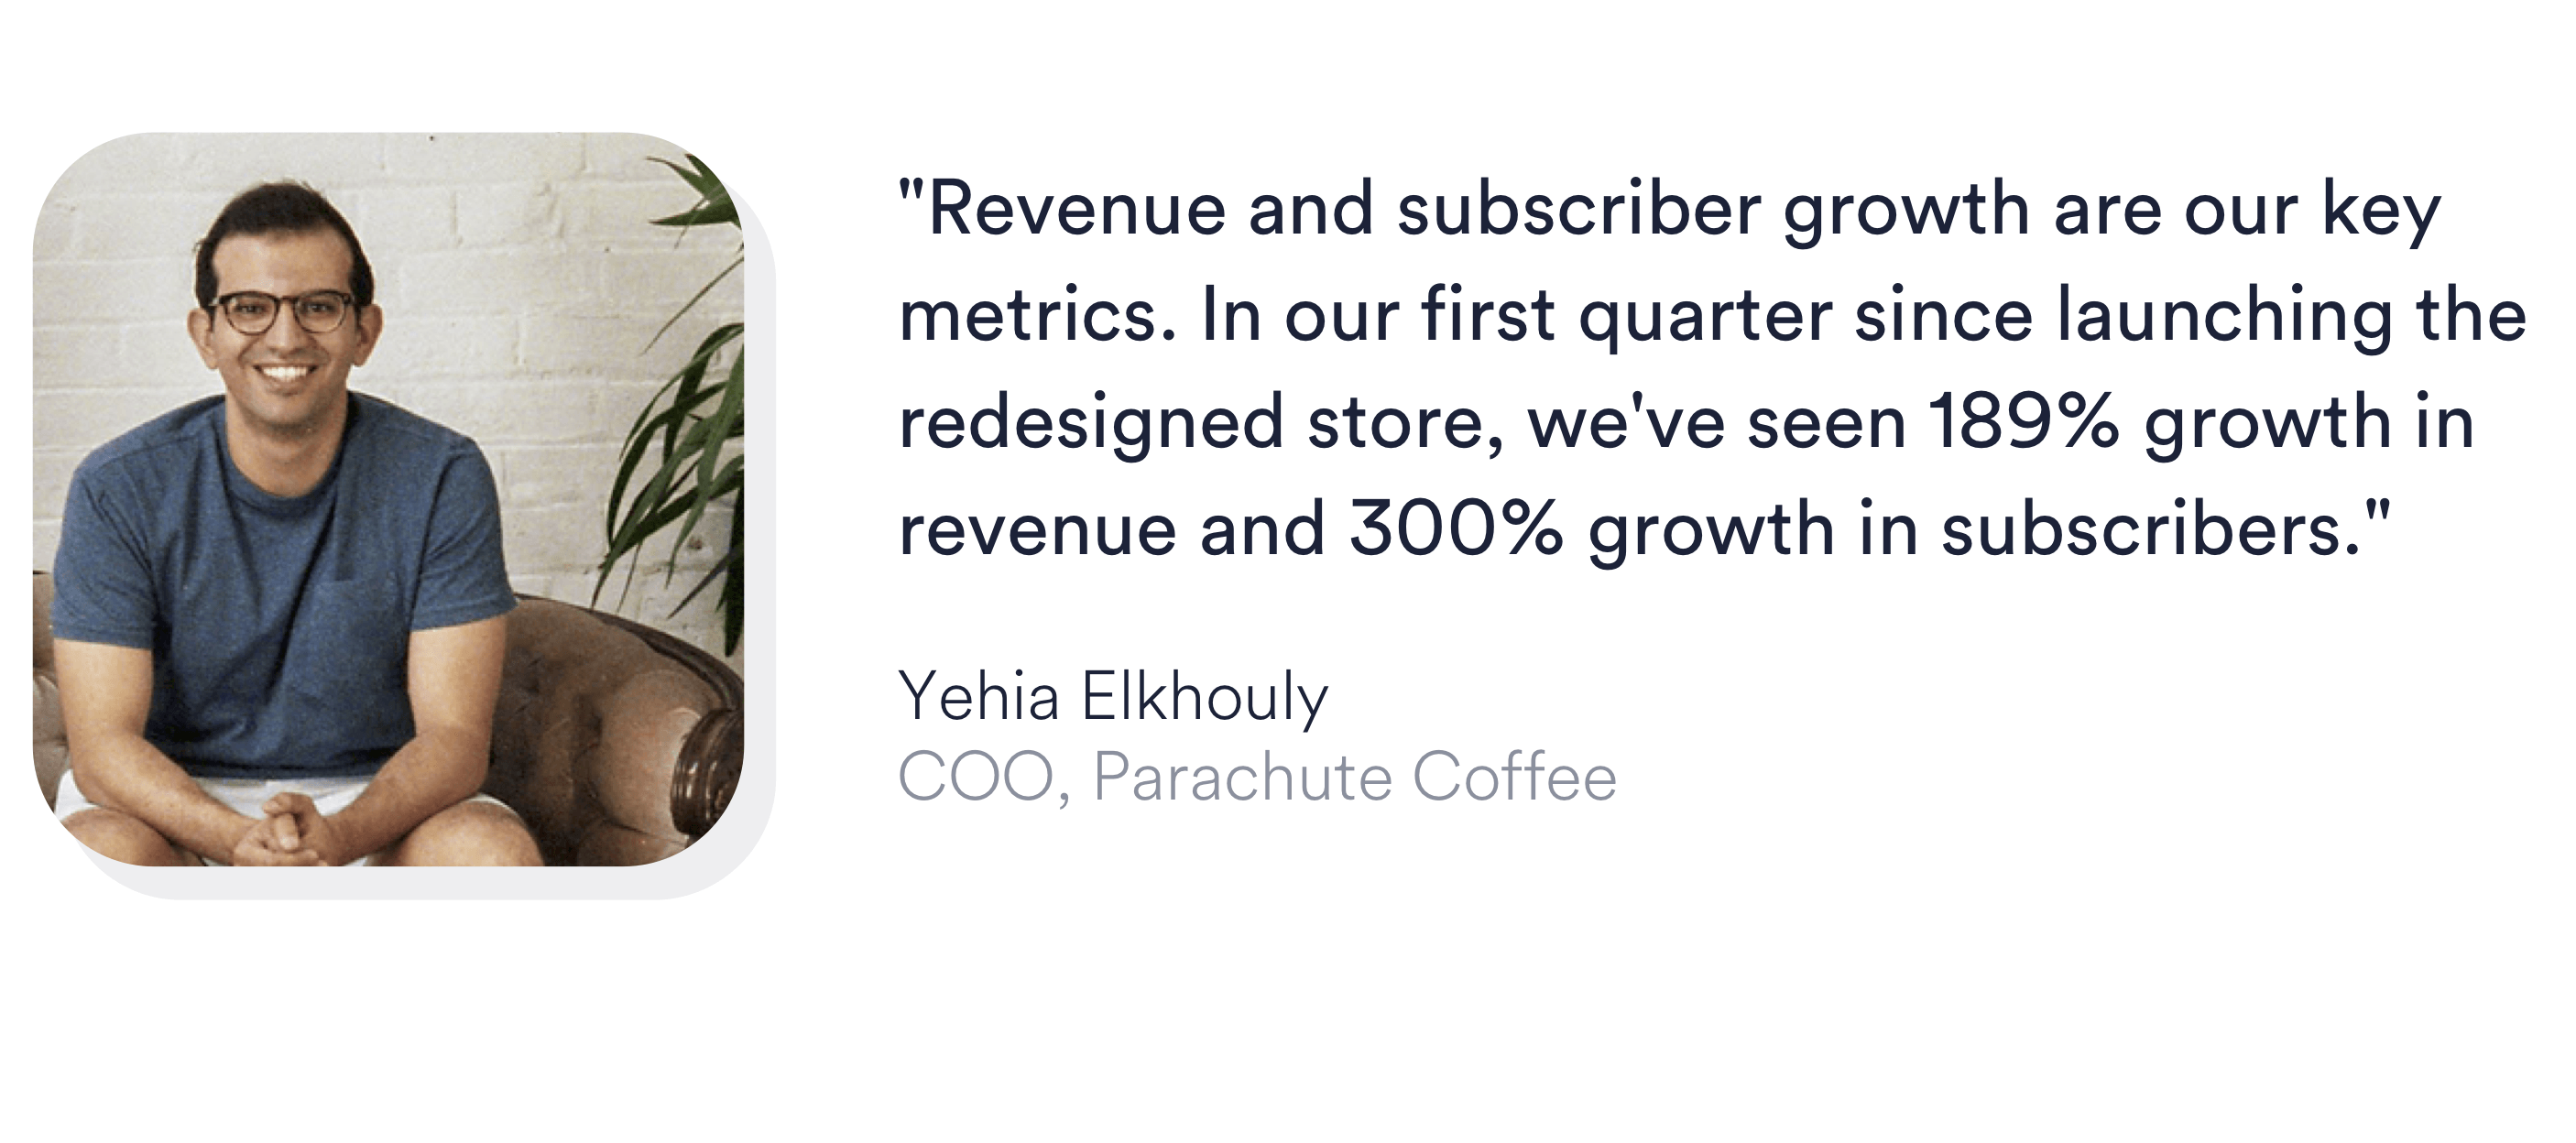 Pull quote reading revenue and subscriber growth are our key metrics. In our first quarter since launching the redesigned store, we've seen 189% growth in revenue and 300% growth in subscribers.